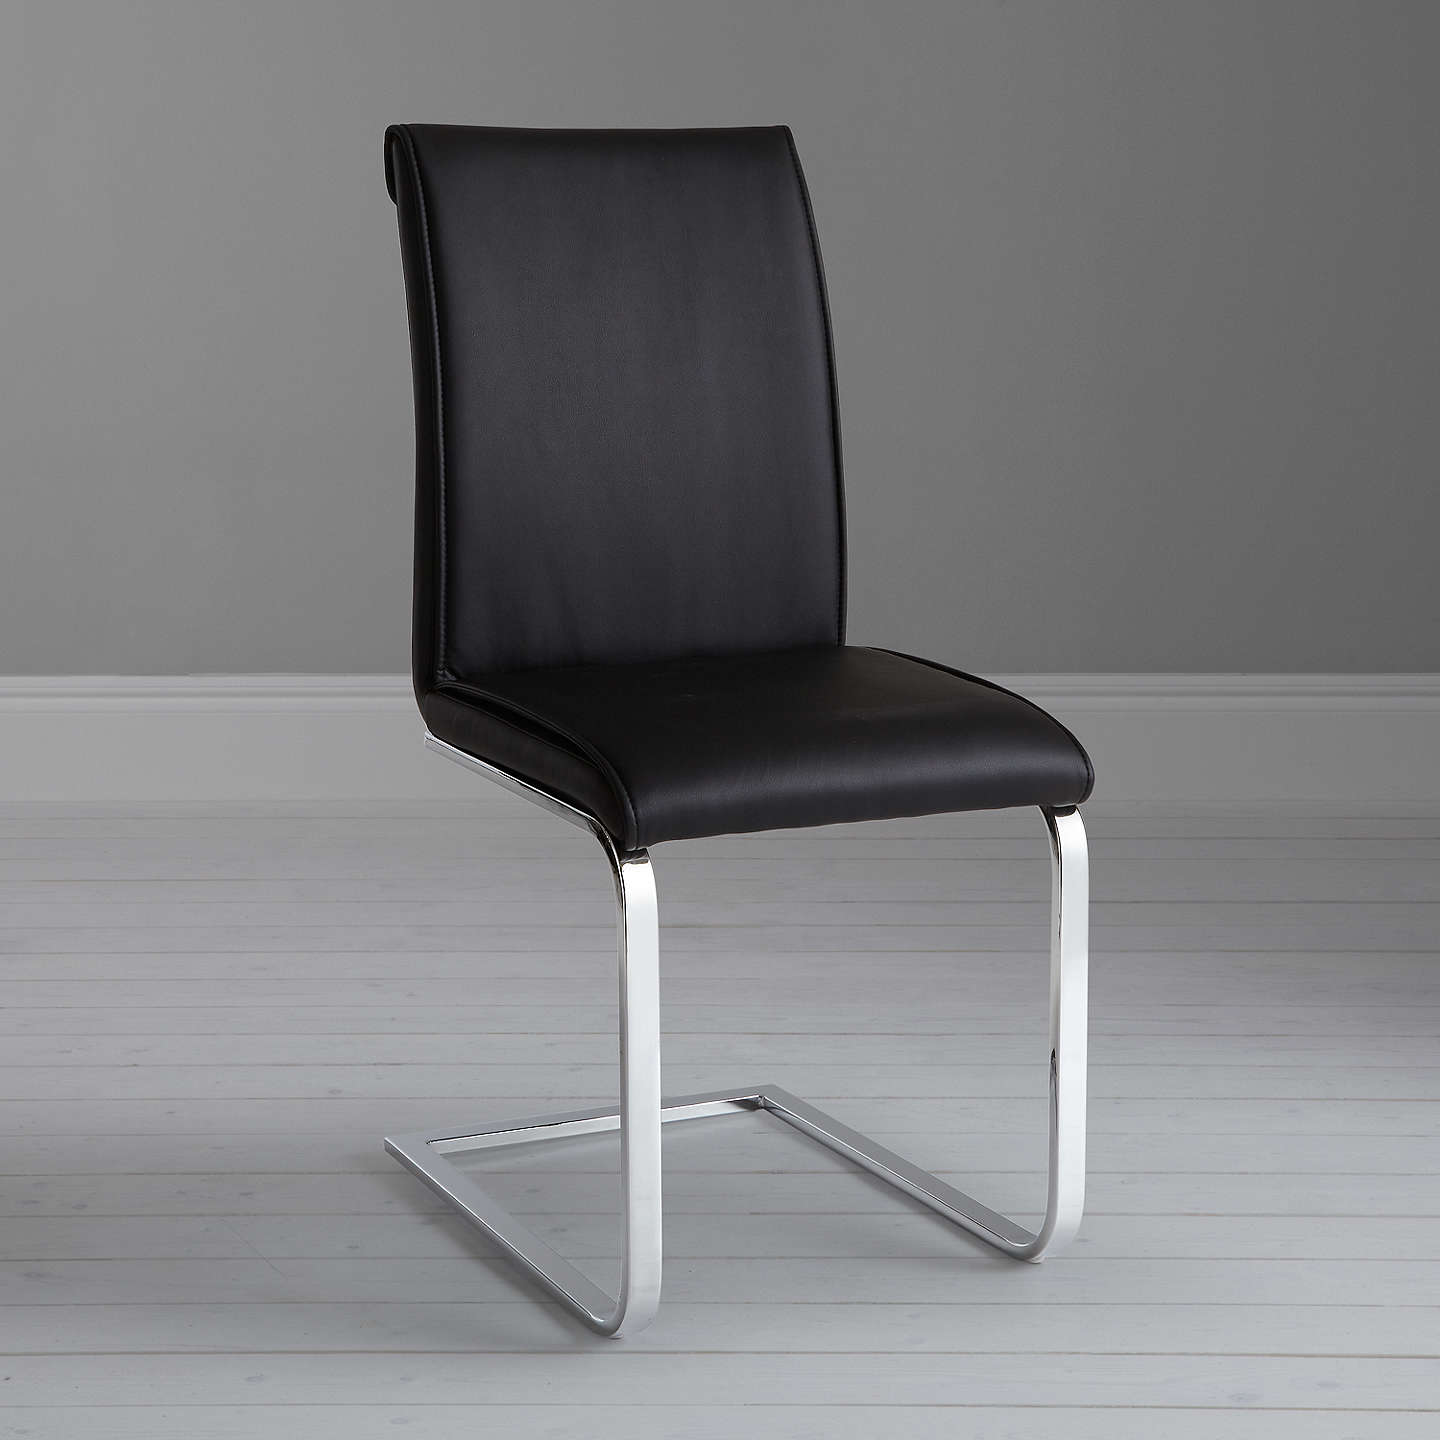 John lewis ronson dining chair black at john lewis for John lewis chinese furniture